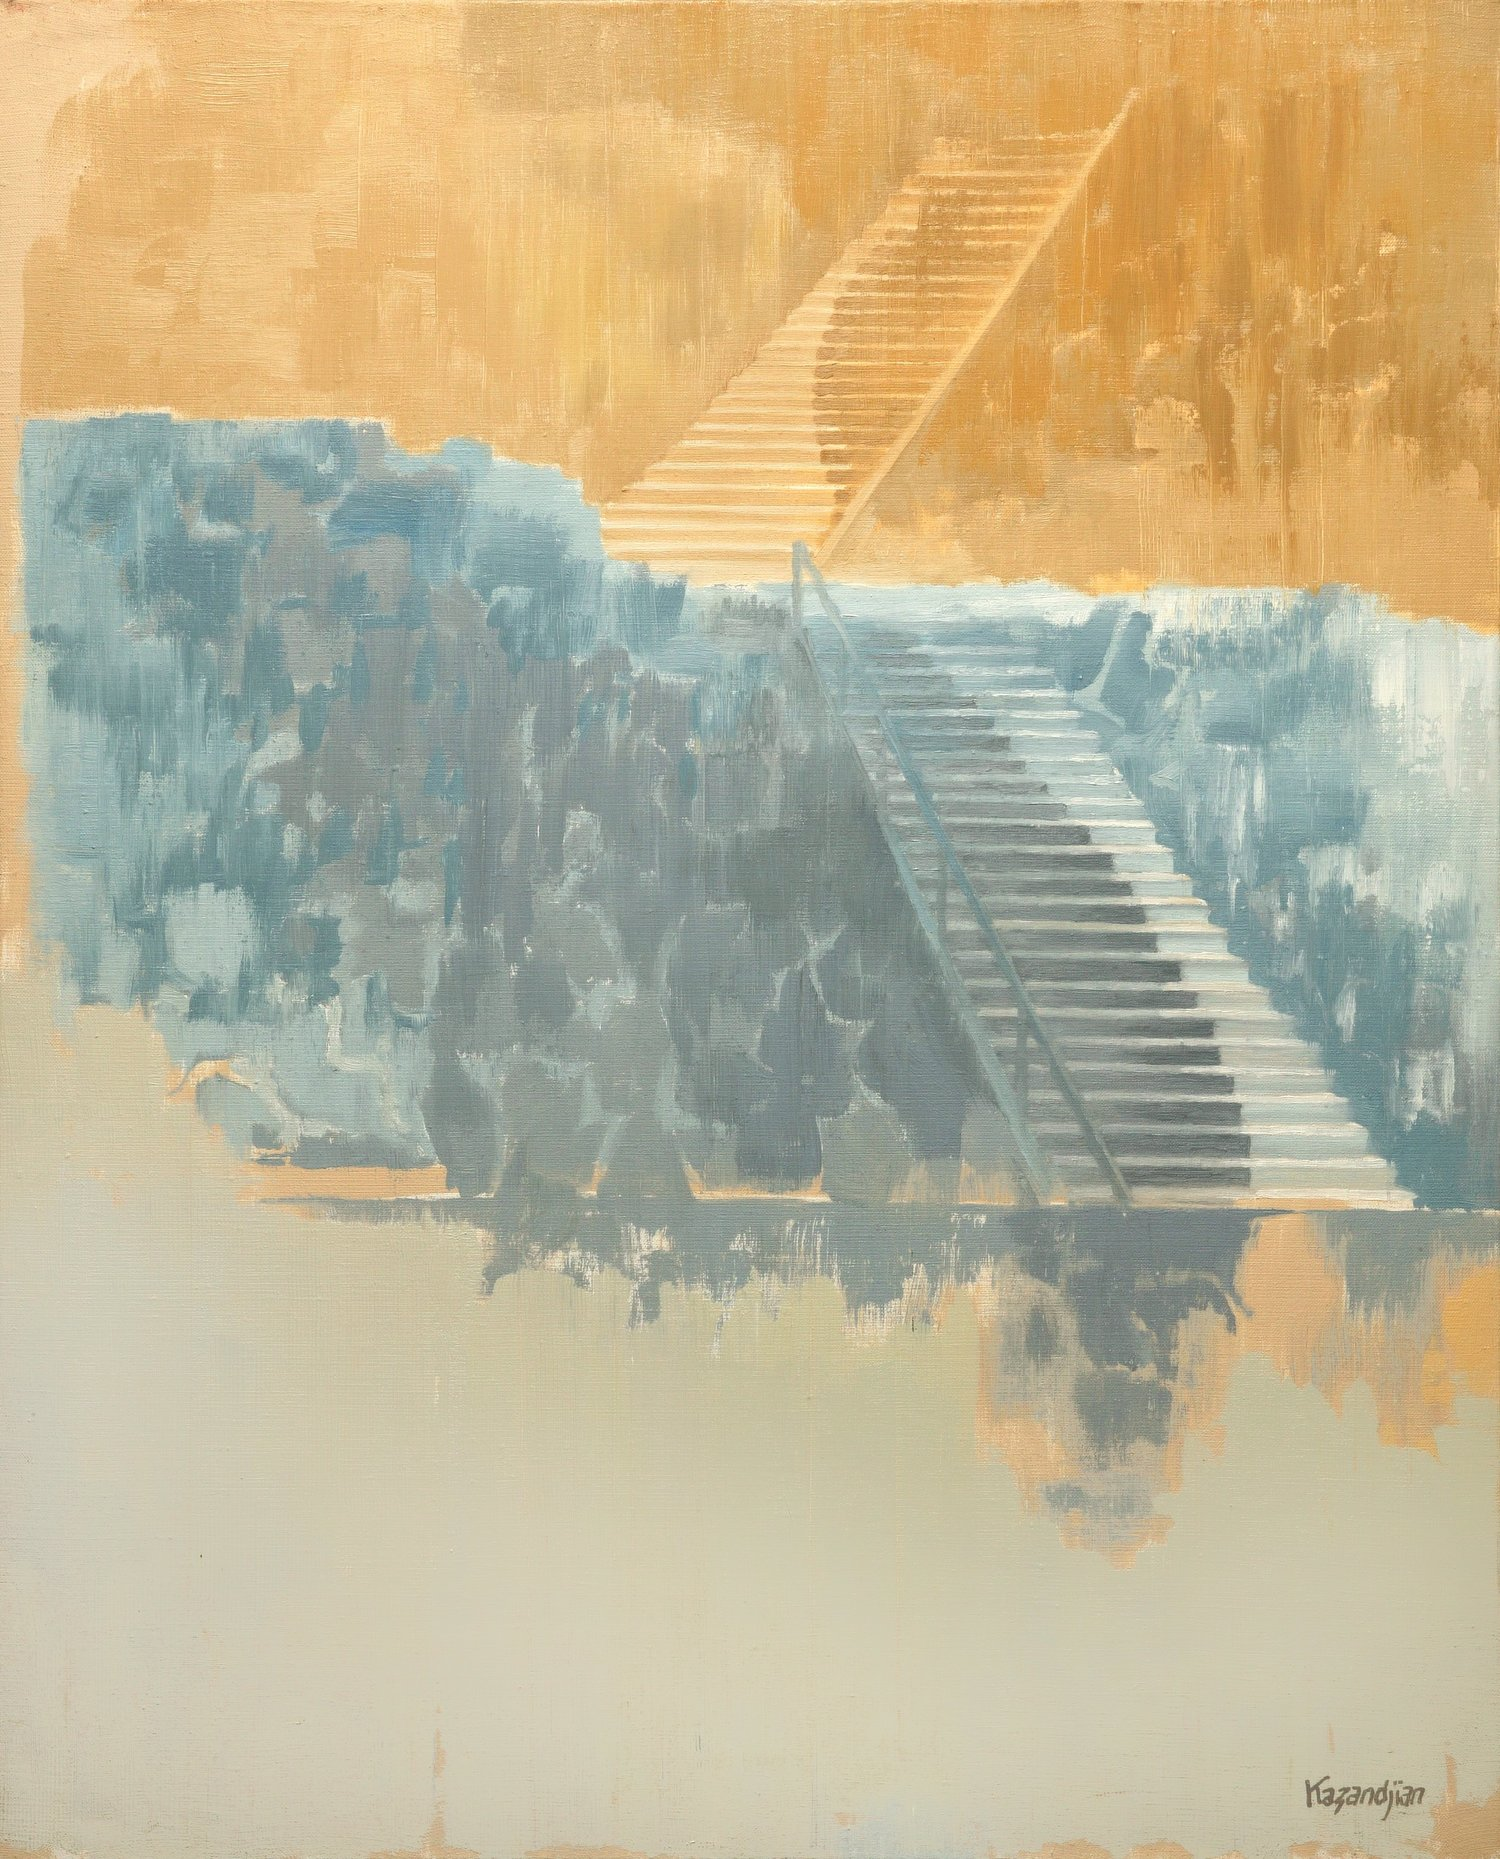 SEQUENCES- LANDSCAPE AND STAIRCASE